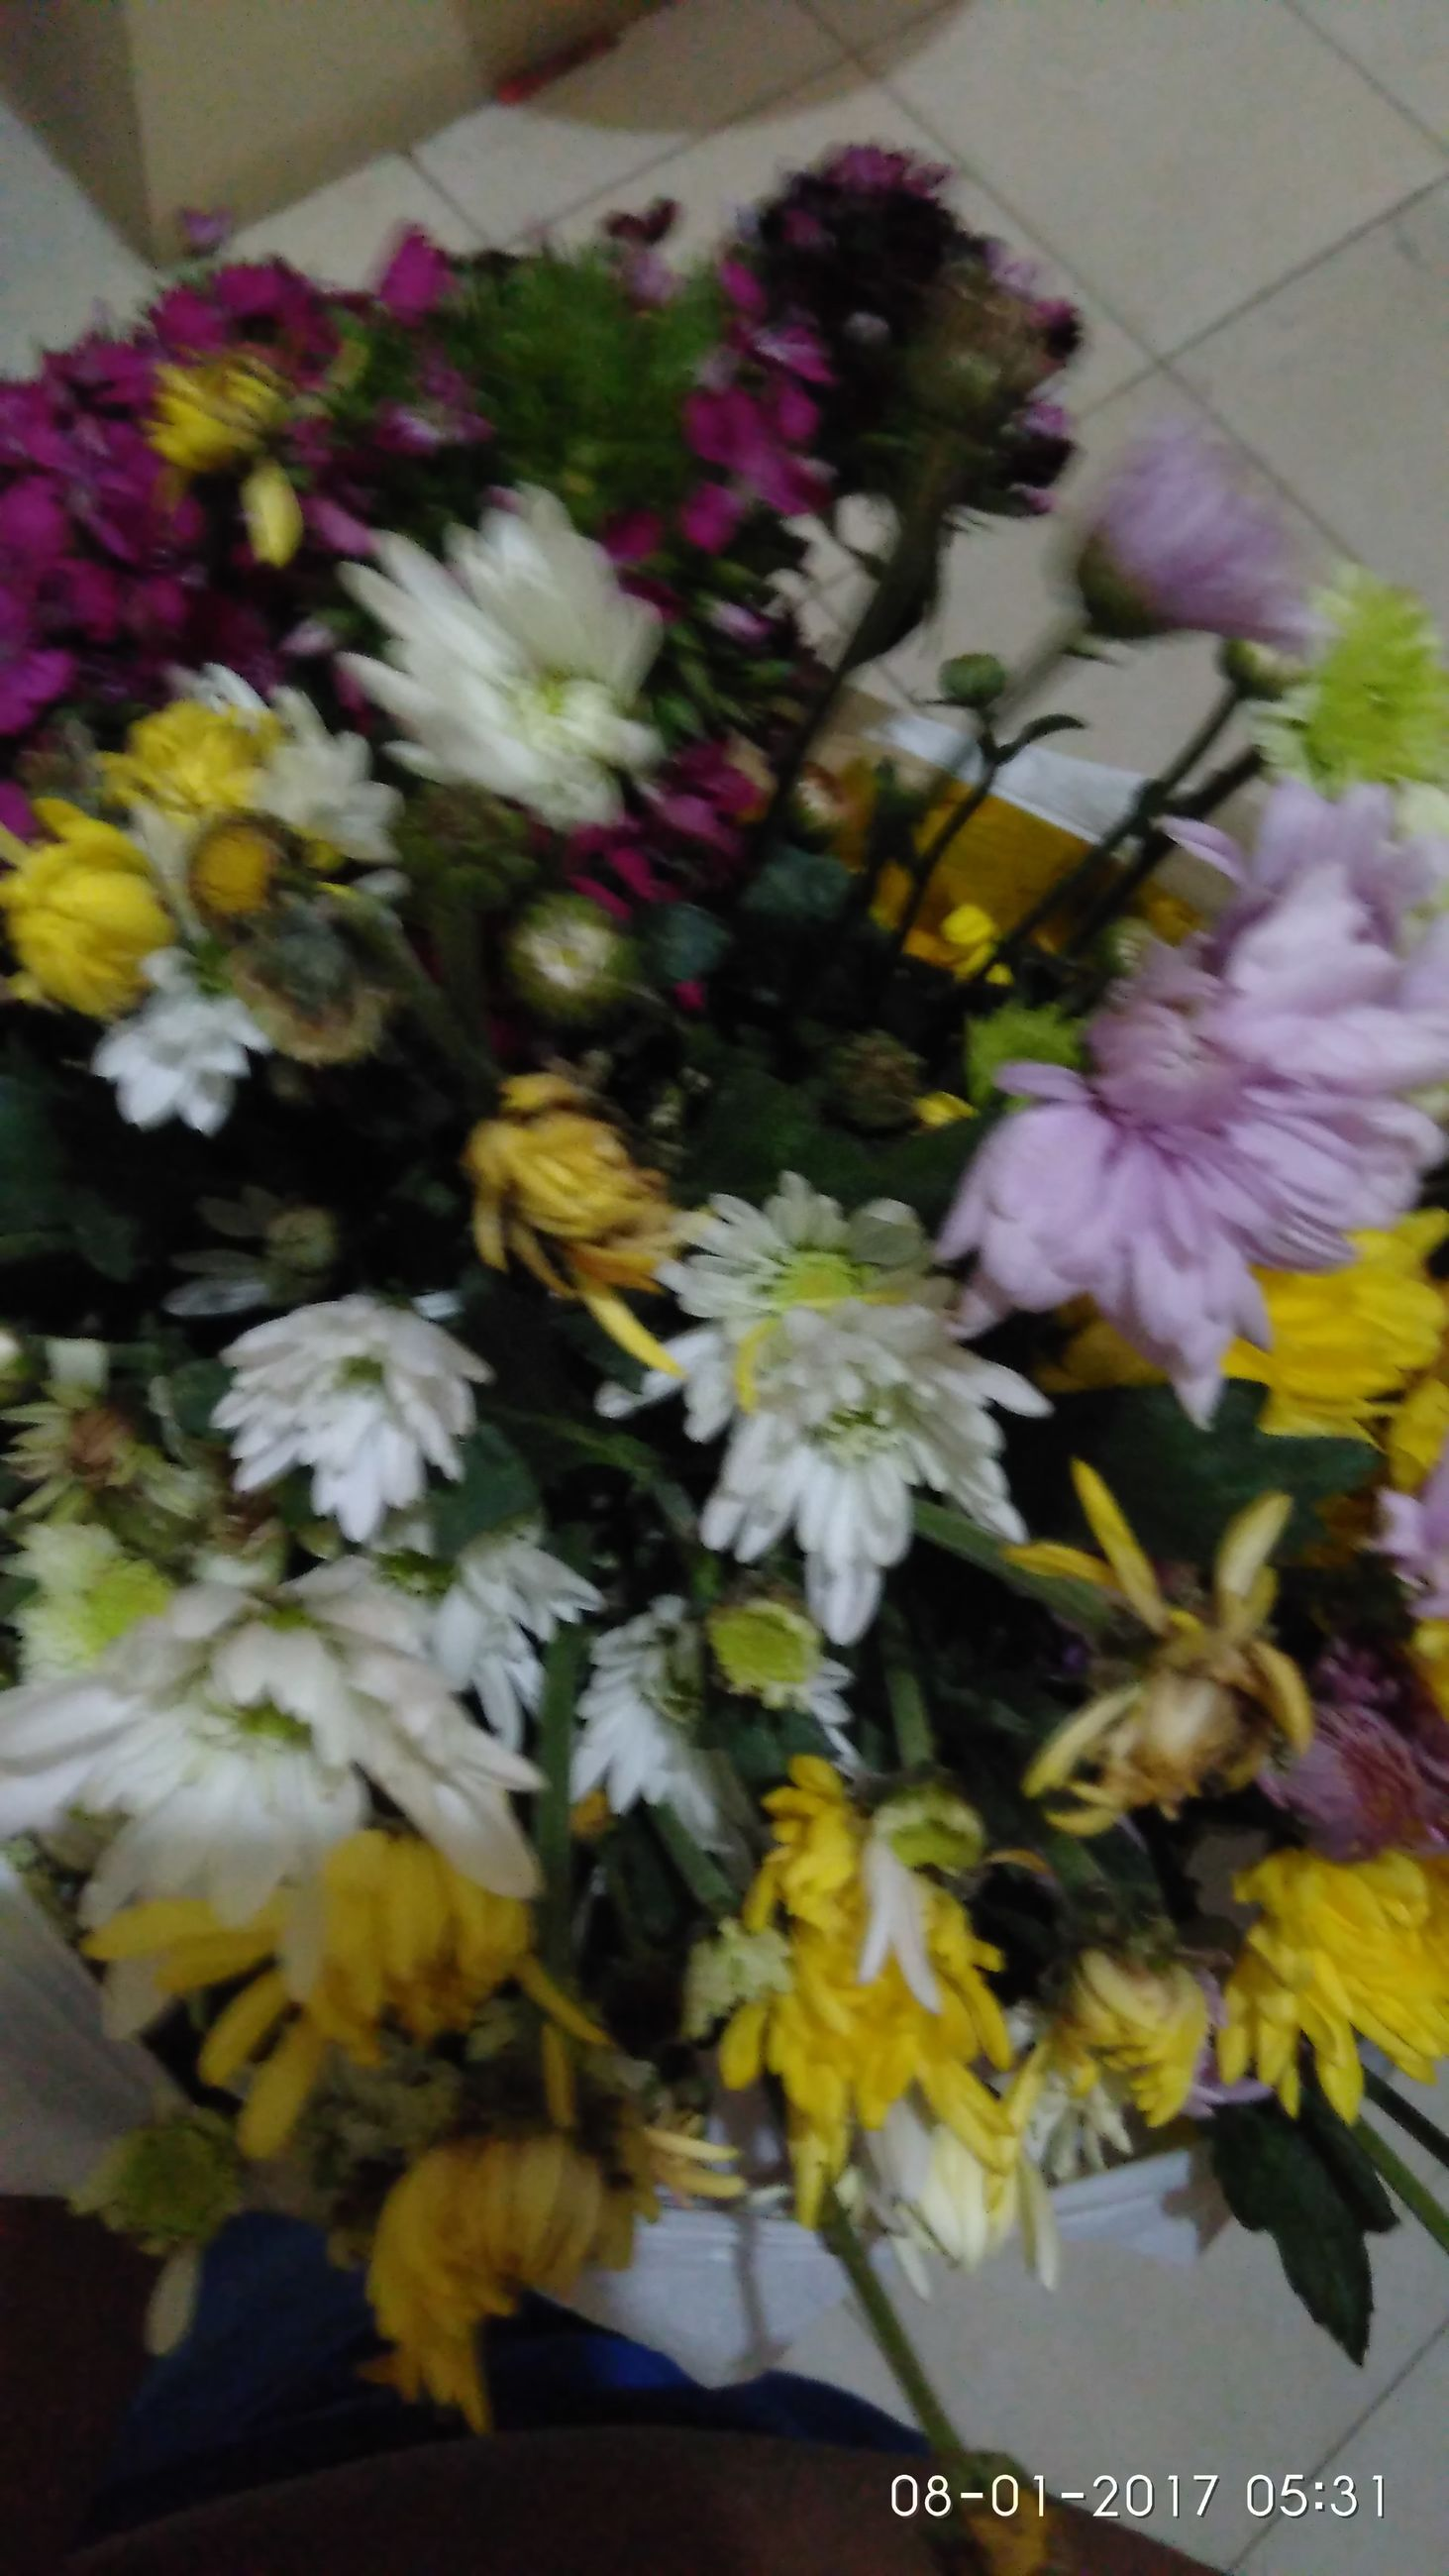 flower, fragility, freshness, petal, beauty in nature, nature, flower head, yellow, bouquet, daisy, flower arrangement, plant, no people, indoors, day, sunflower, close-up, gerbera daisy, flower market